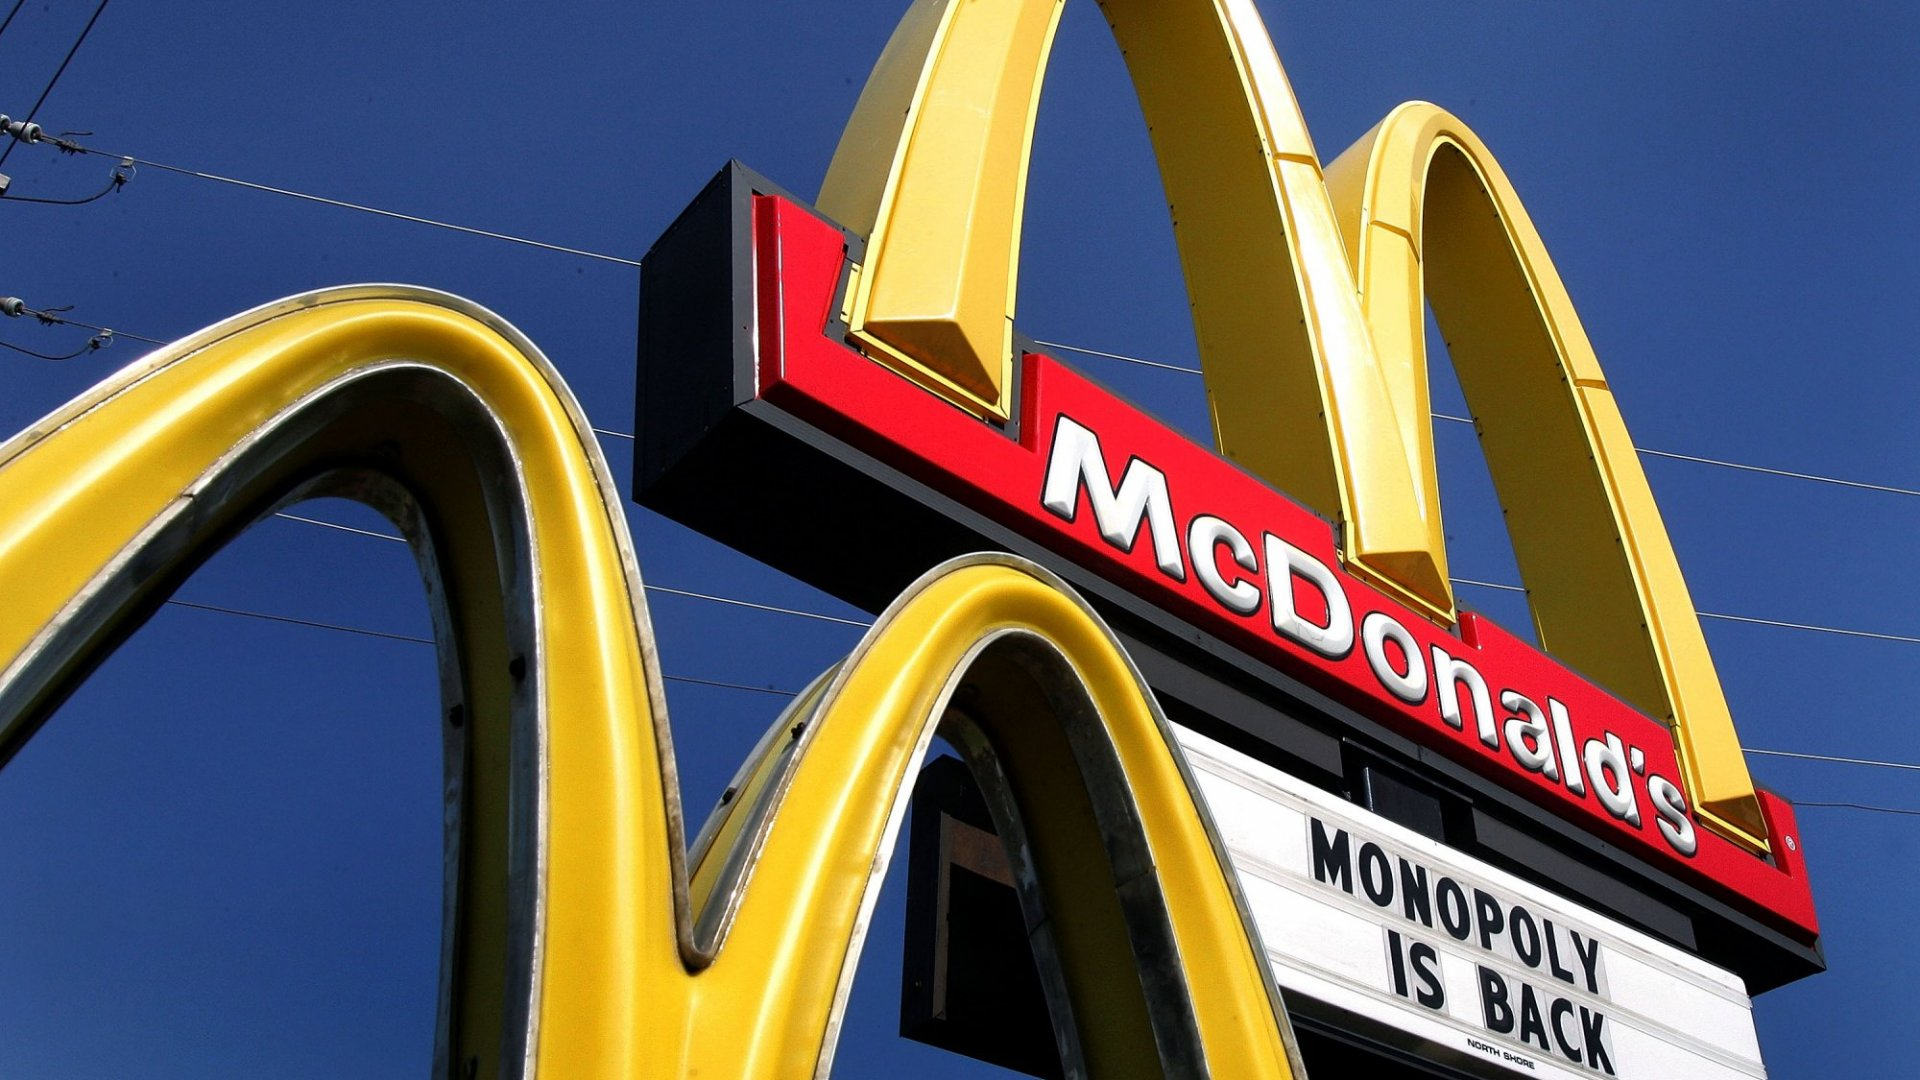 McDonald's Just Confirmed a Surprising Menu Change That Is Going to Get Customers Very Excited (And Shake Up the Fast-Food Industry)